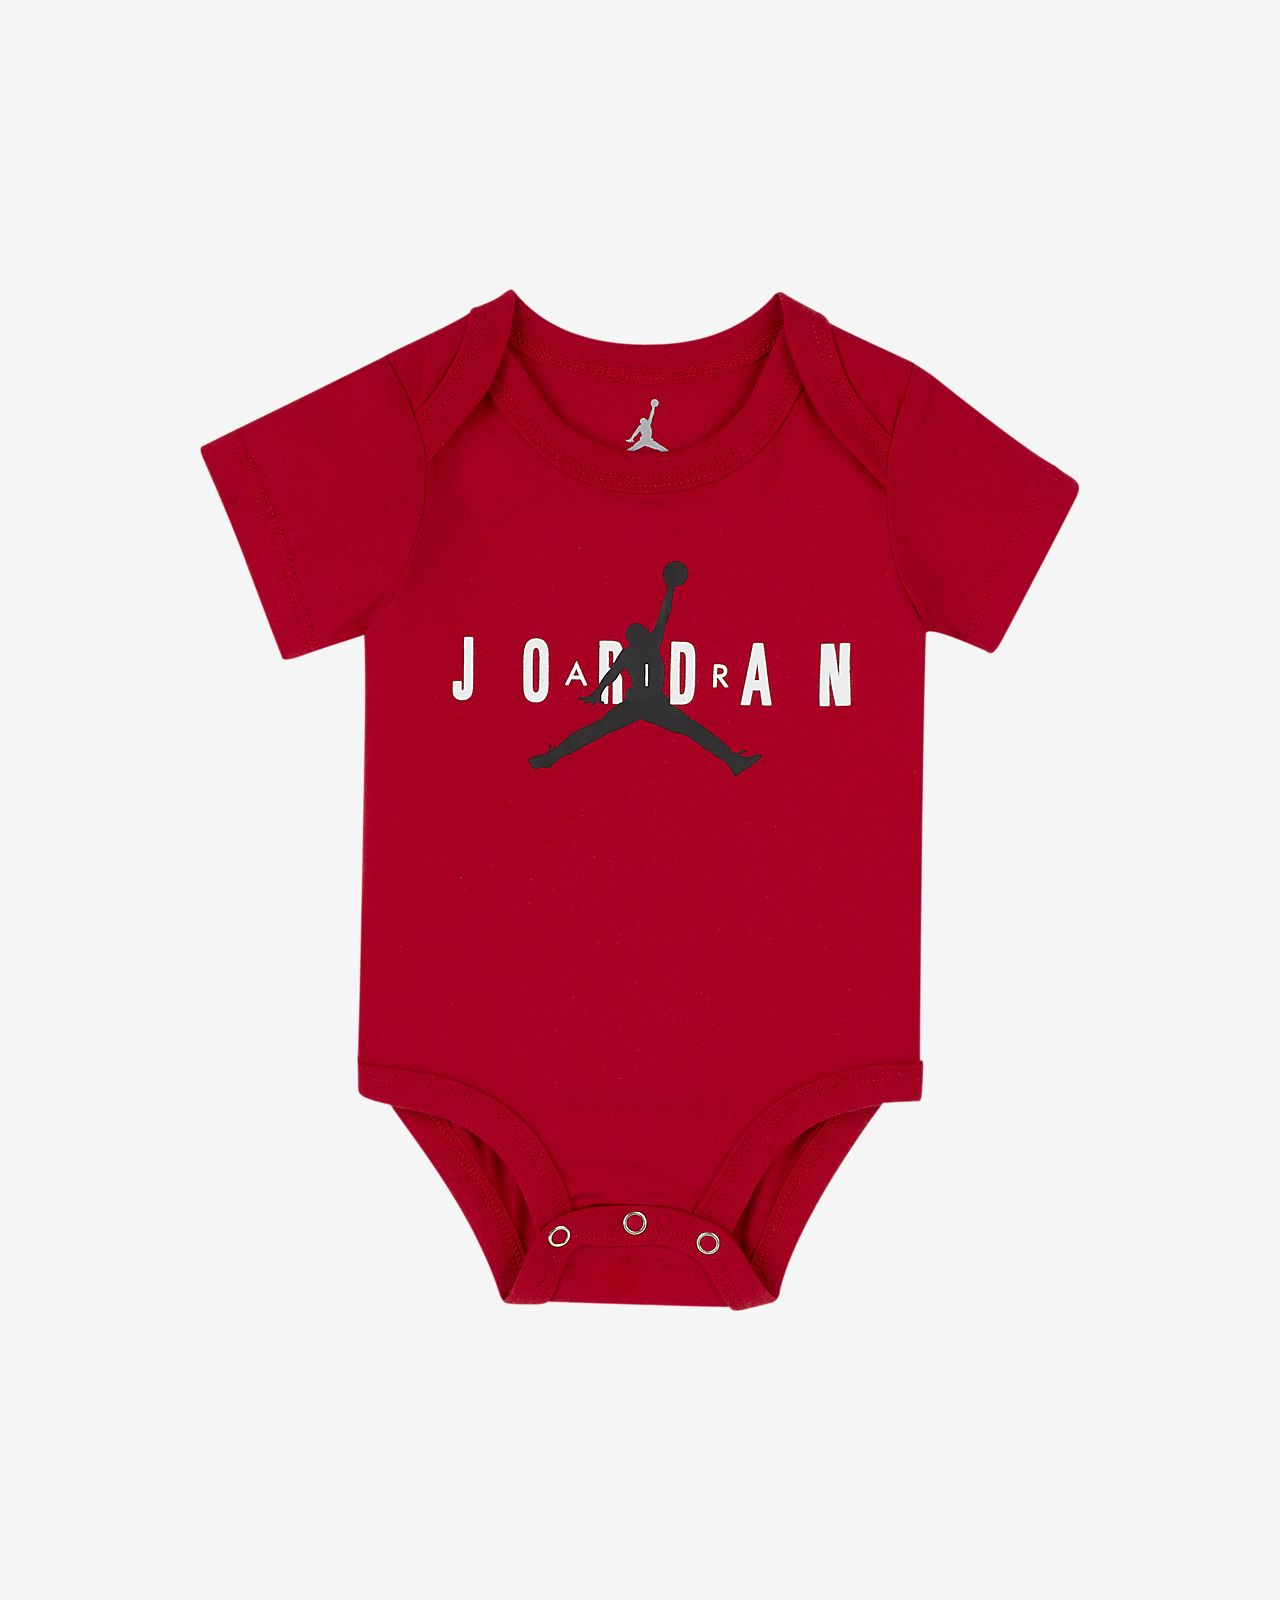 Jordan Jumpman Baby Graphic Bodysuit